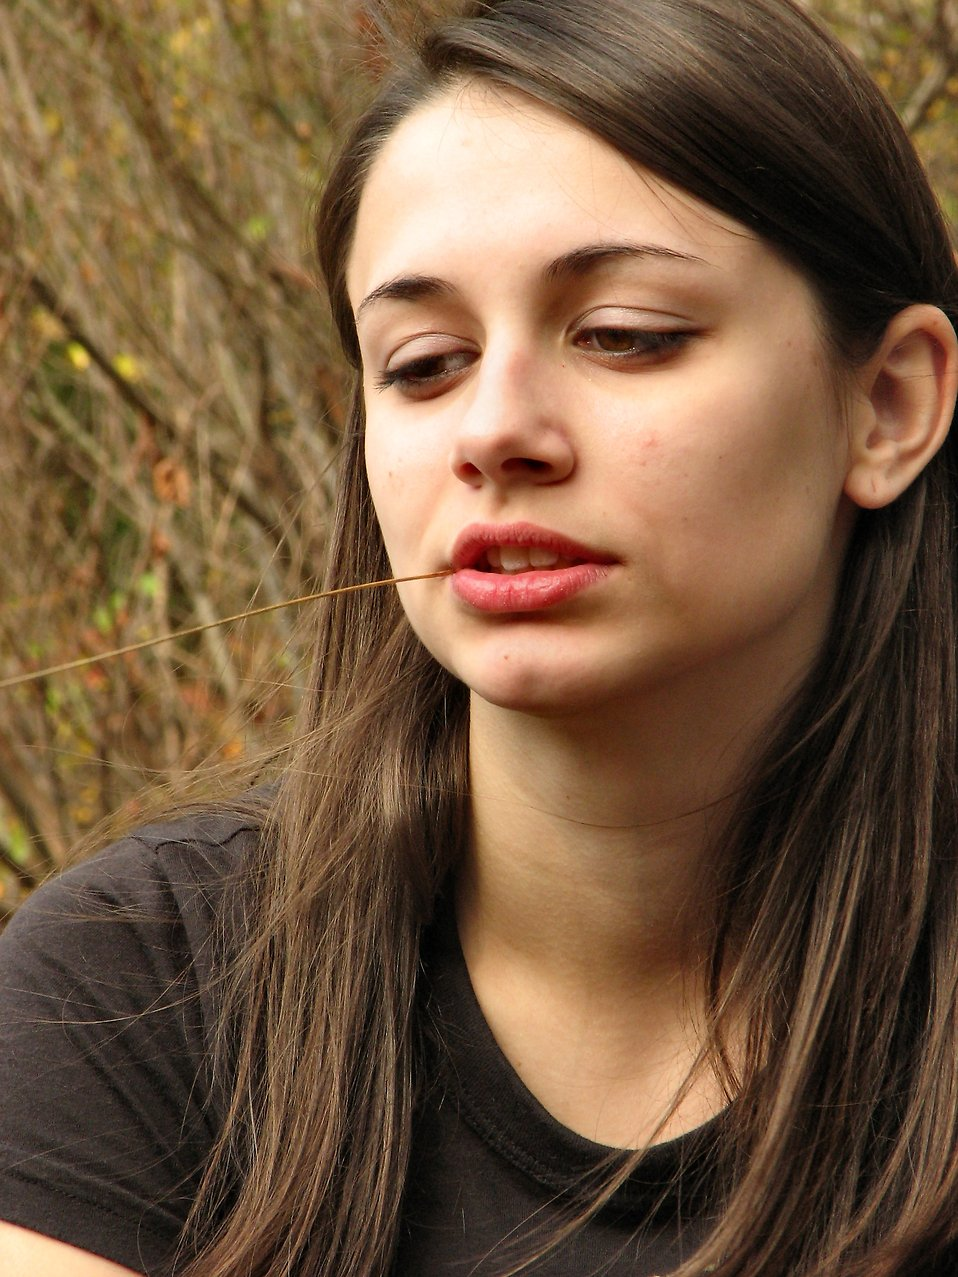 Outdoor portrait of a teenage girl : Free Stock Photo